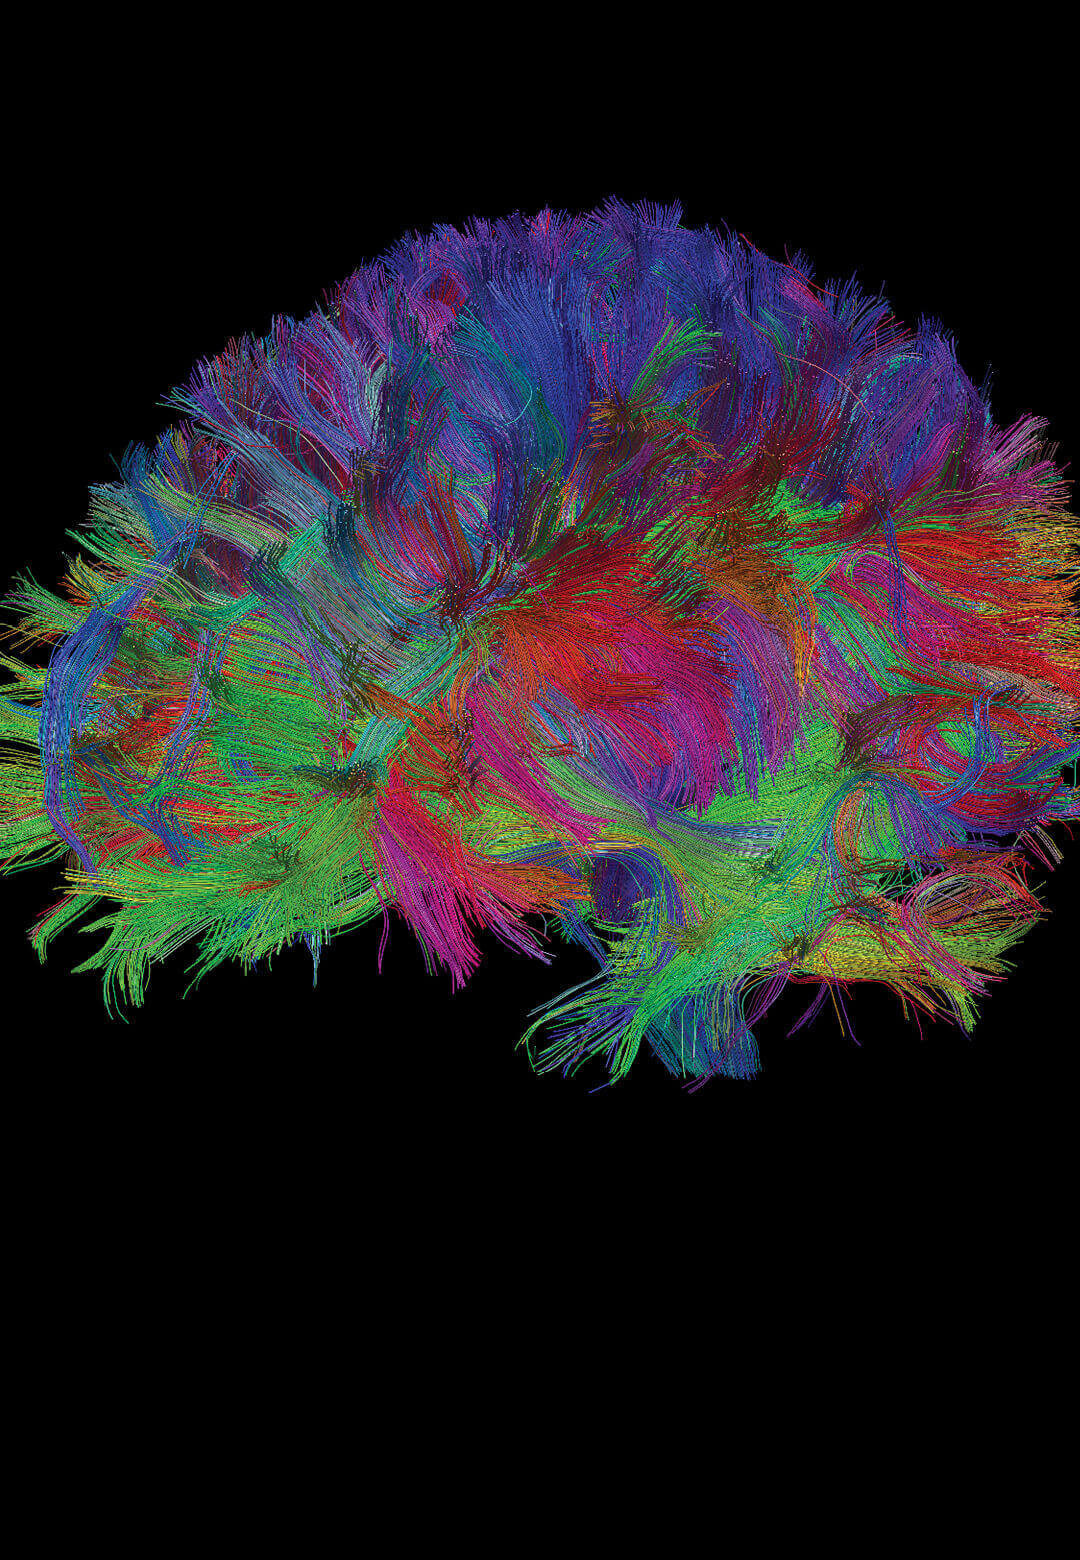 Our brains have always been the ultimate reference for perfection, with over 86 billion constituent neurons efficiently processing countless activities | Digital Legacies: Perfection | STIRworld